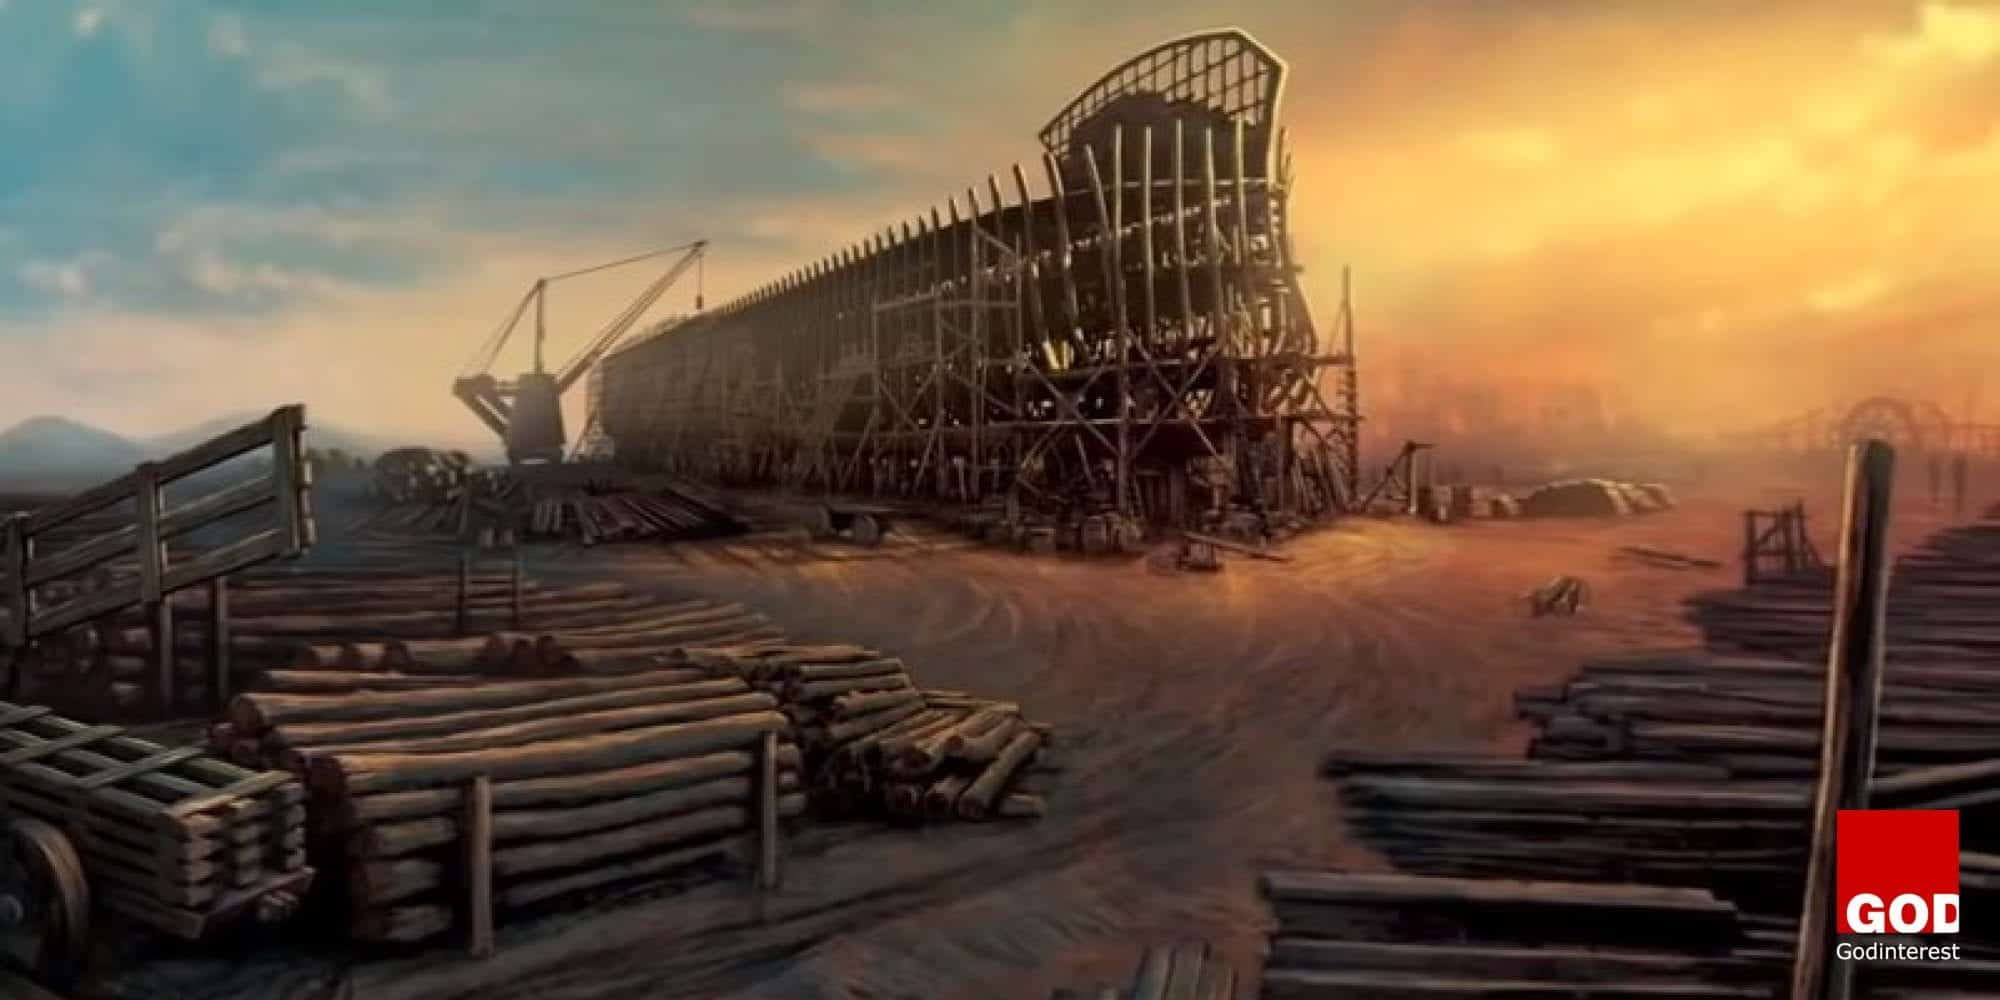 The Creationist Group Are Building a Life-size Noah's Ark, Godinterest Christian Magazine